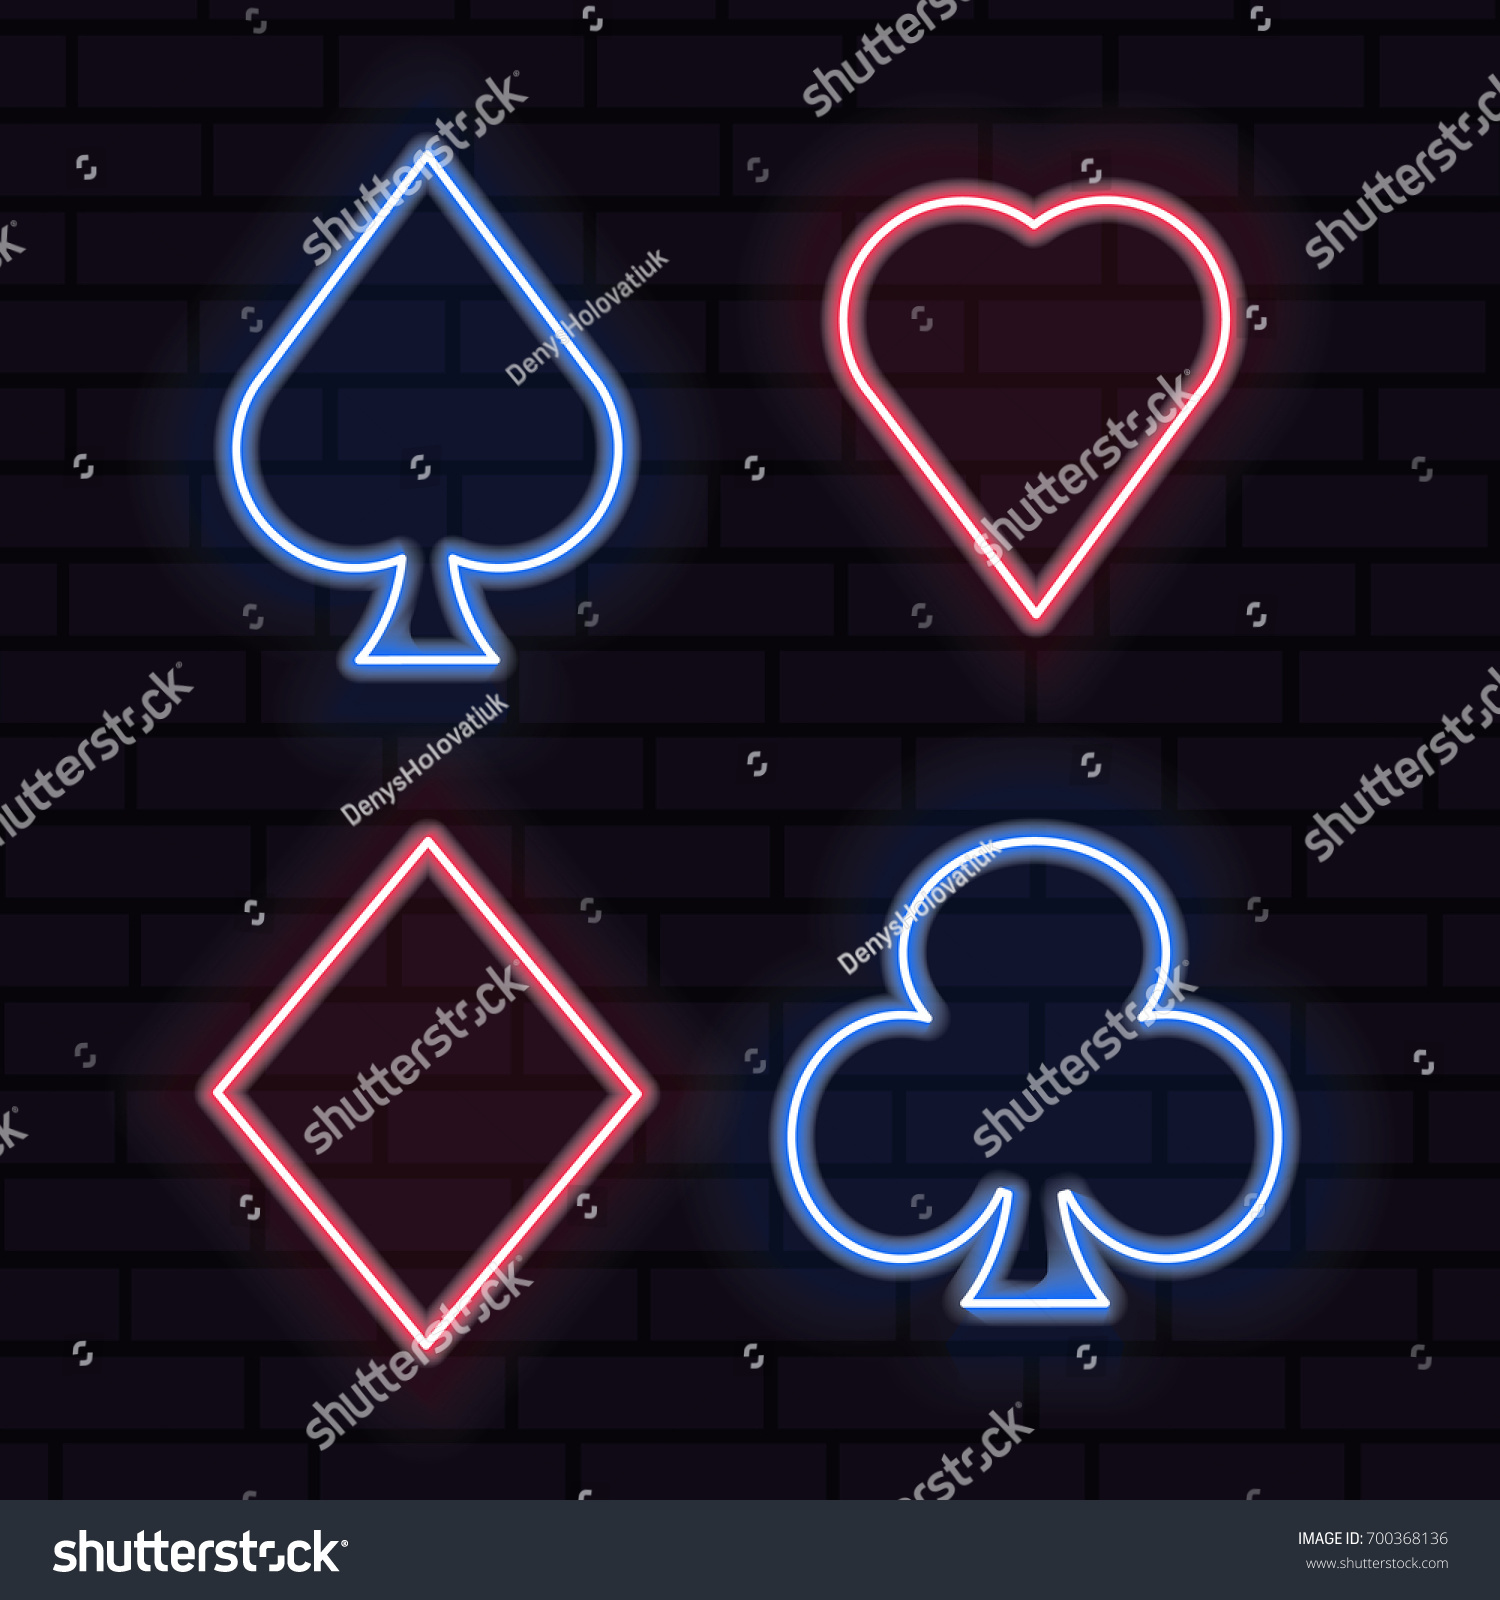 Set neon playing card symbols light stock vector 700368136 set of neon playing card symbols light banners bright emblems realistic playing cards biocorpaavc